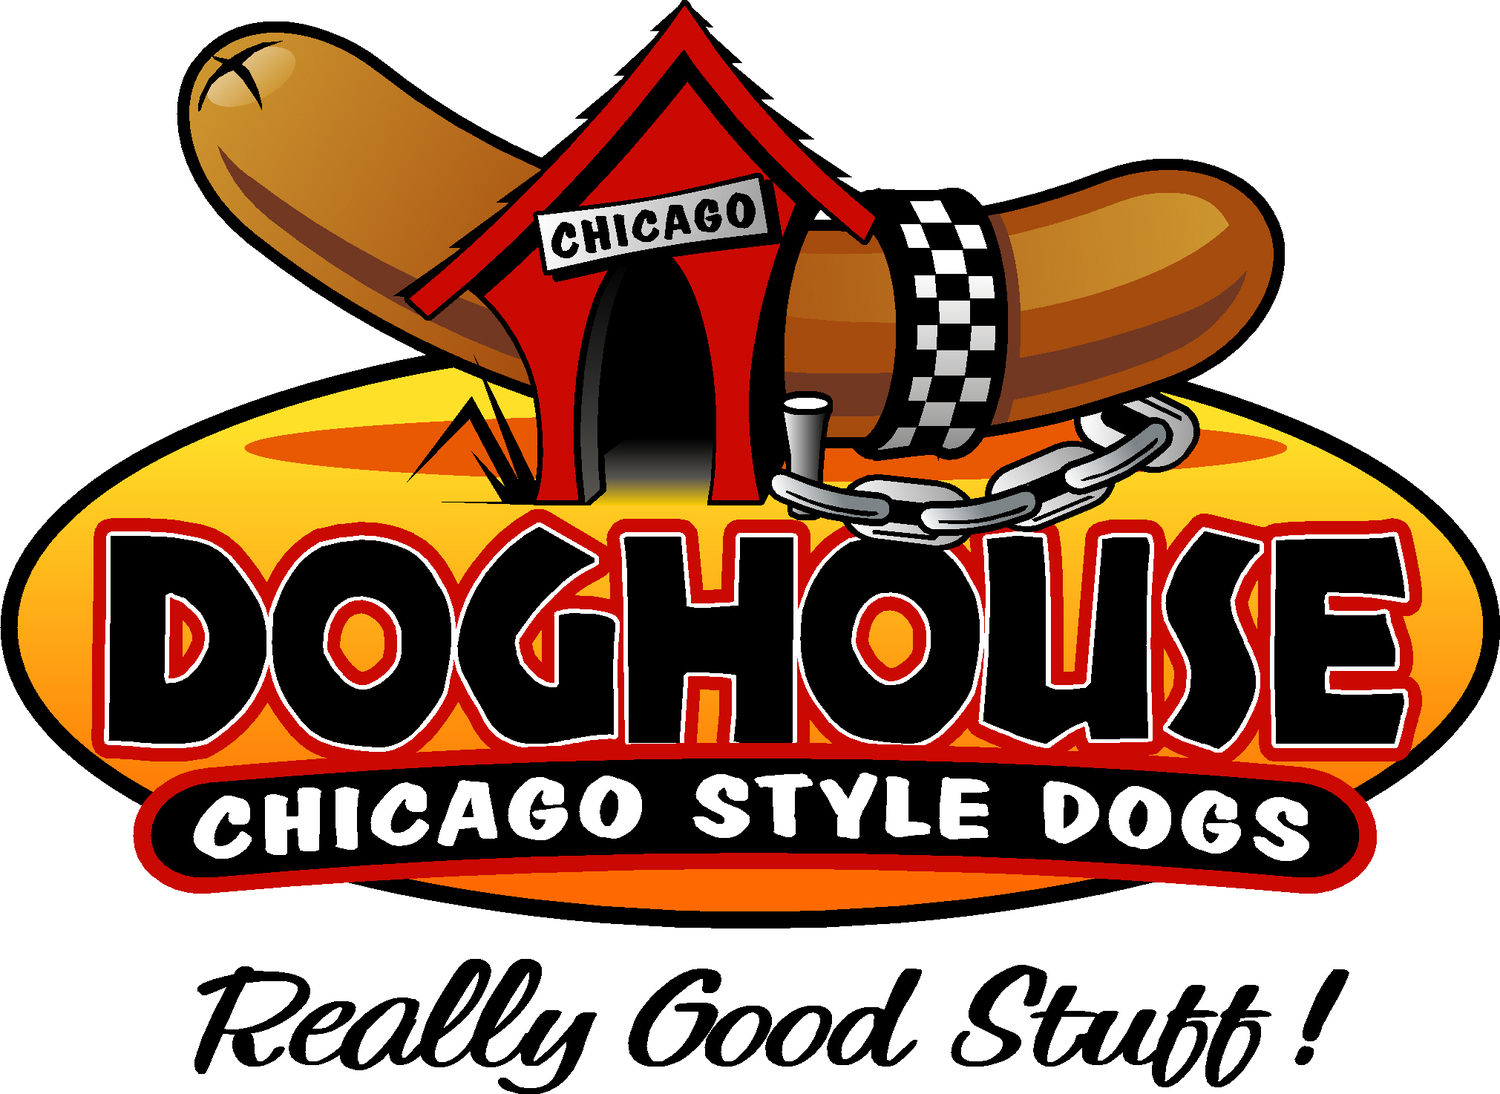 Chicago Dog House